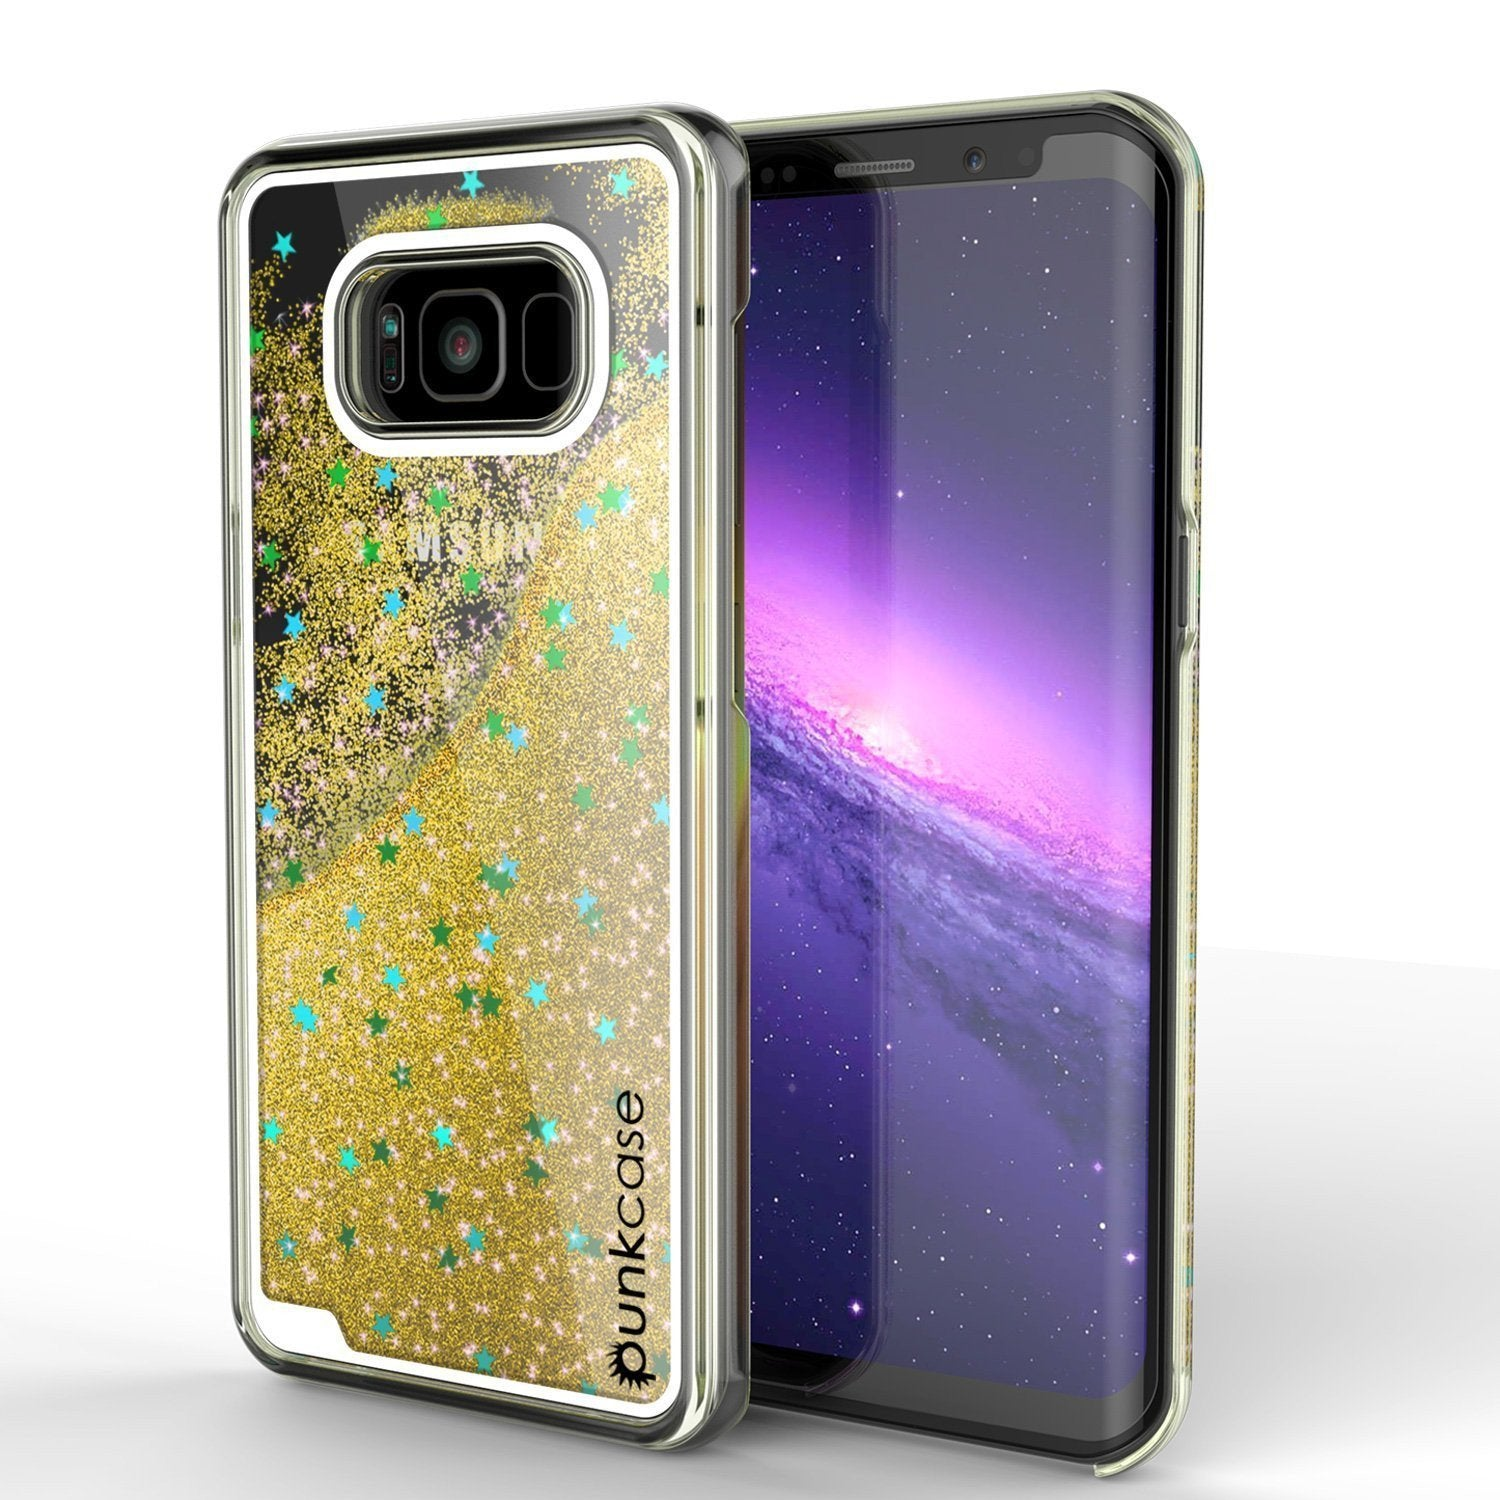 Galaxy S8 Case, Punkcase [Liquid Series] Protective Dual Layer Floating Glitter Cover with lots of Bling & Sparkle + PunkShield Screen Protector for Samsung S8 [Gold]